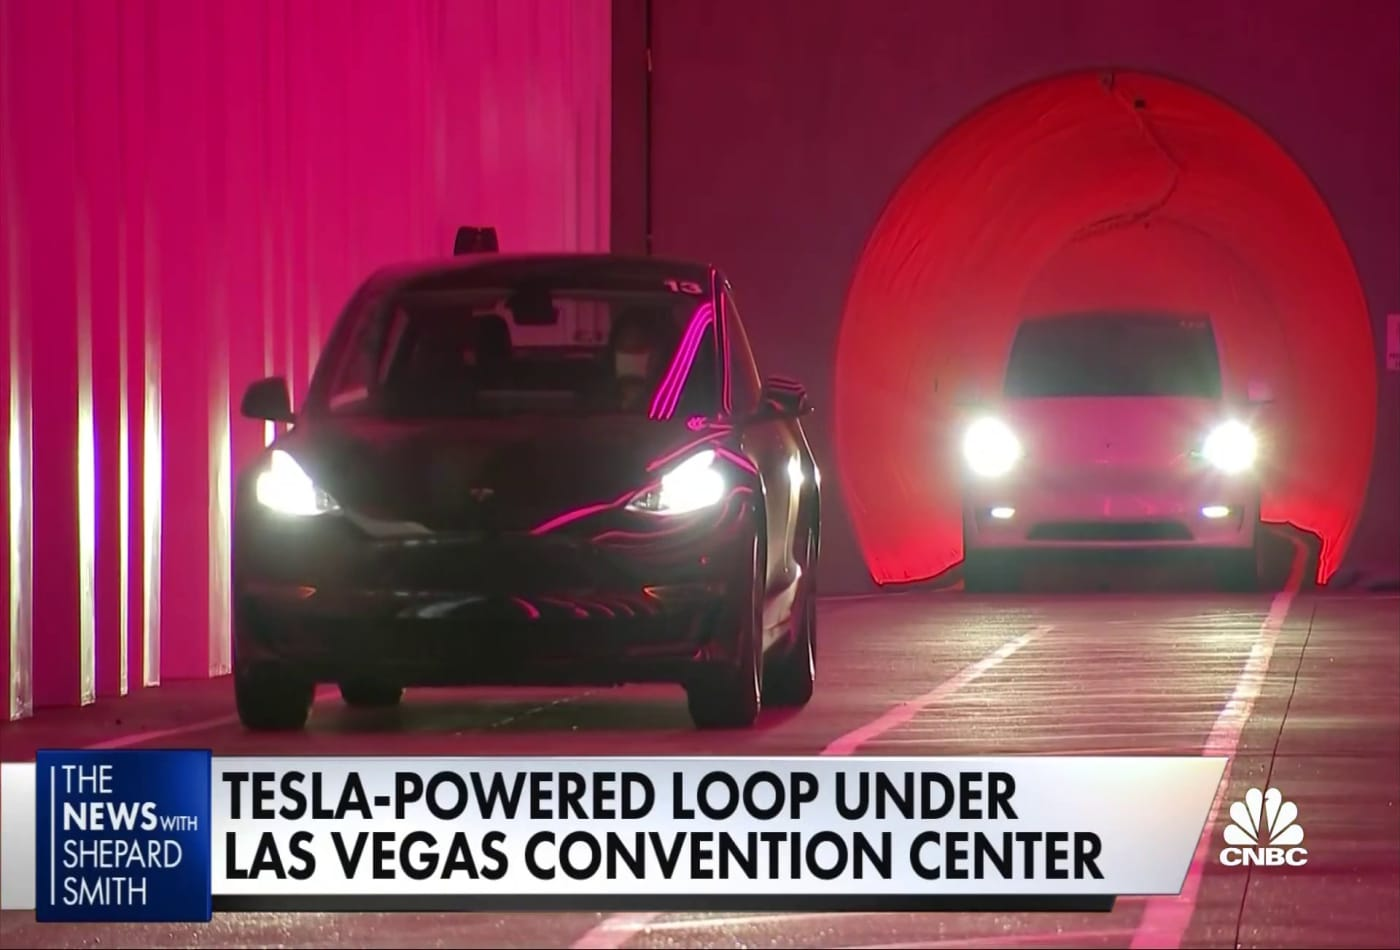 Elon Musk's underground loop tunnel in Las Vegas could portend the future